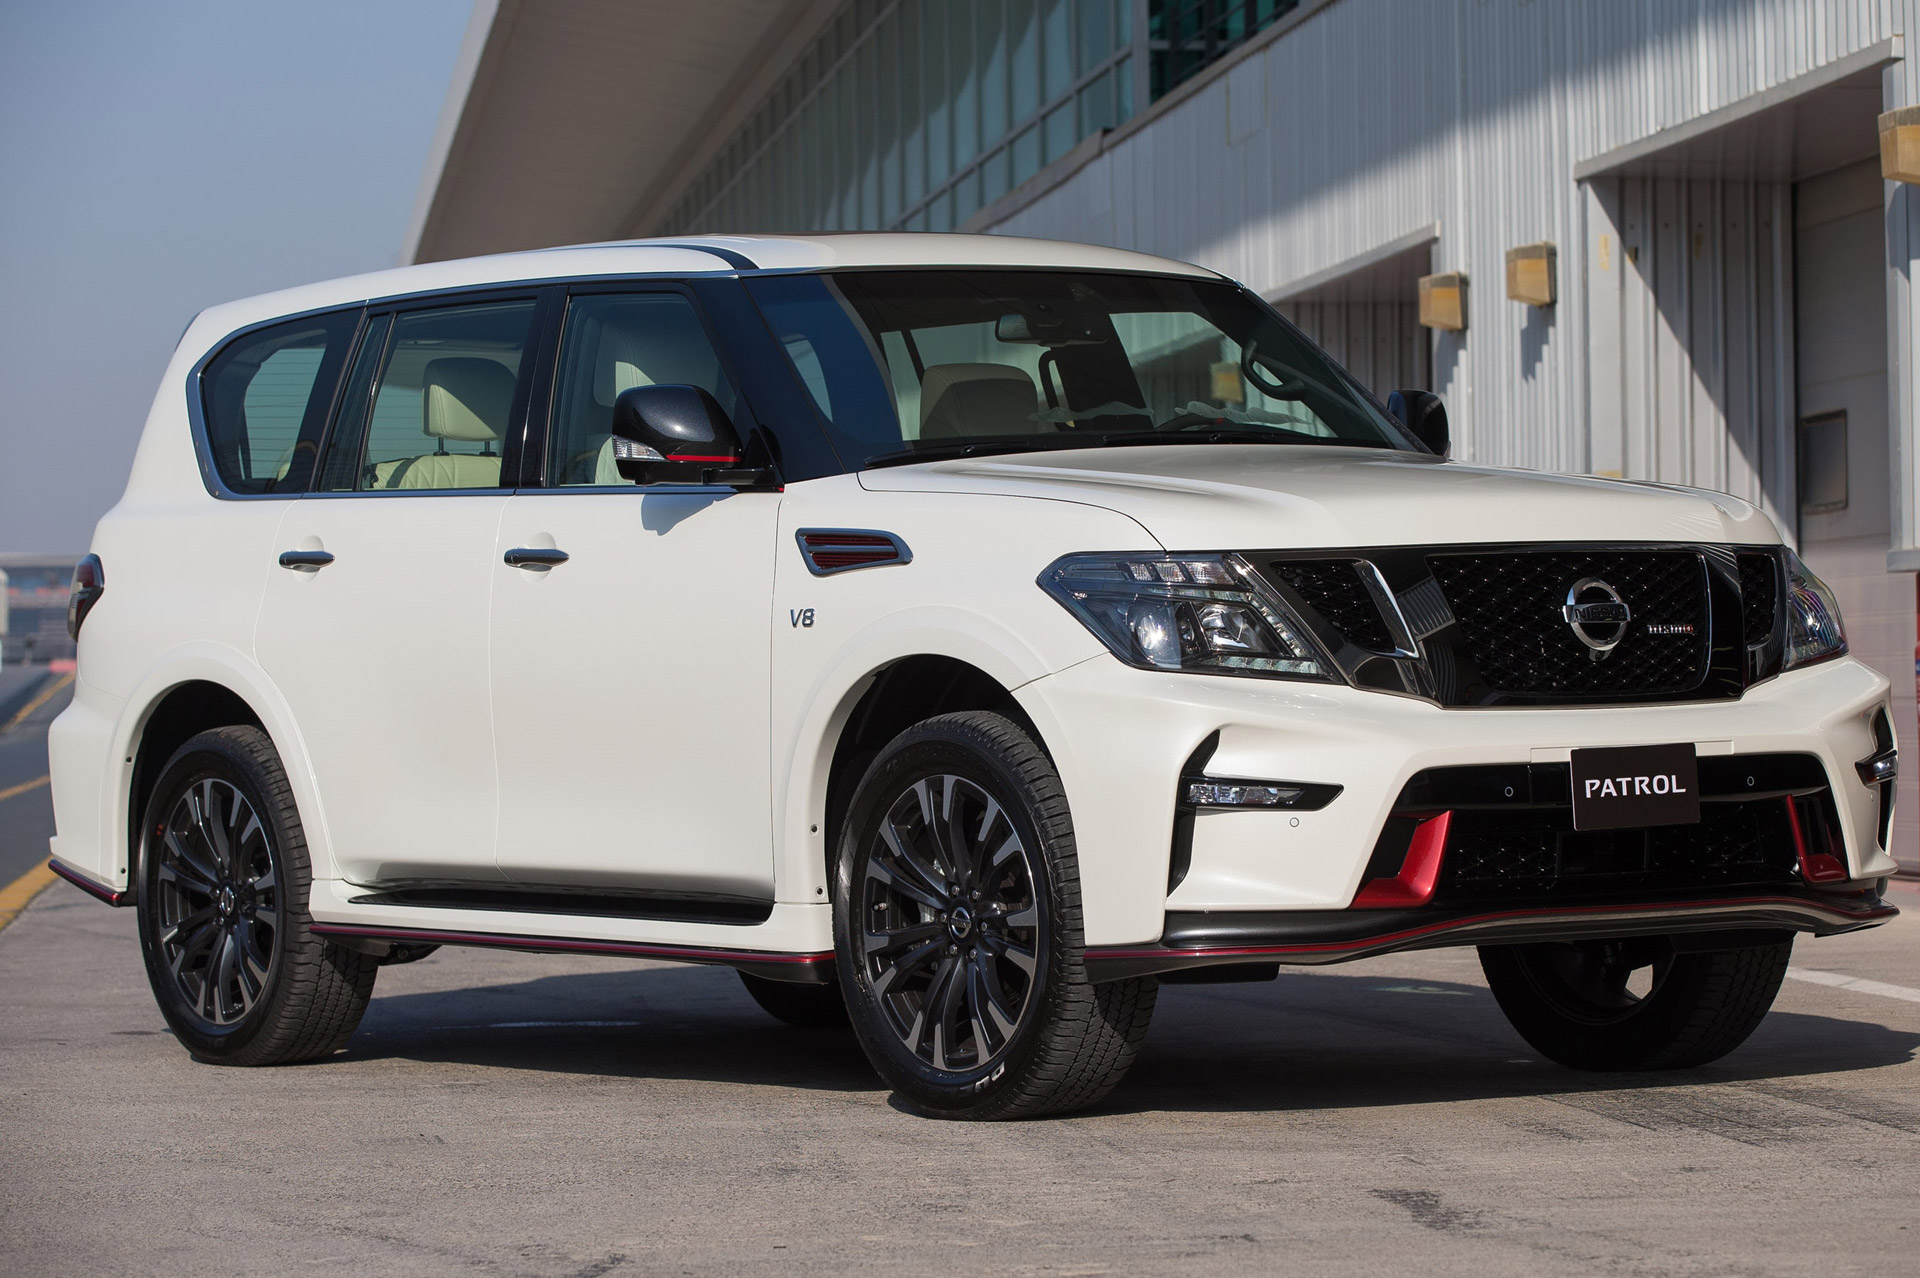 Nissan Patrol Full Size Suv Gets Nismo Treatment